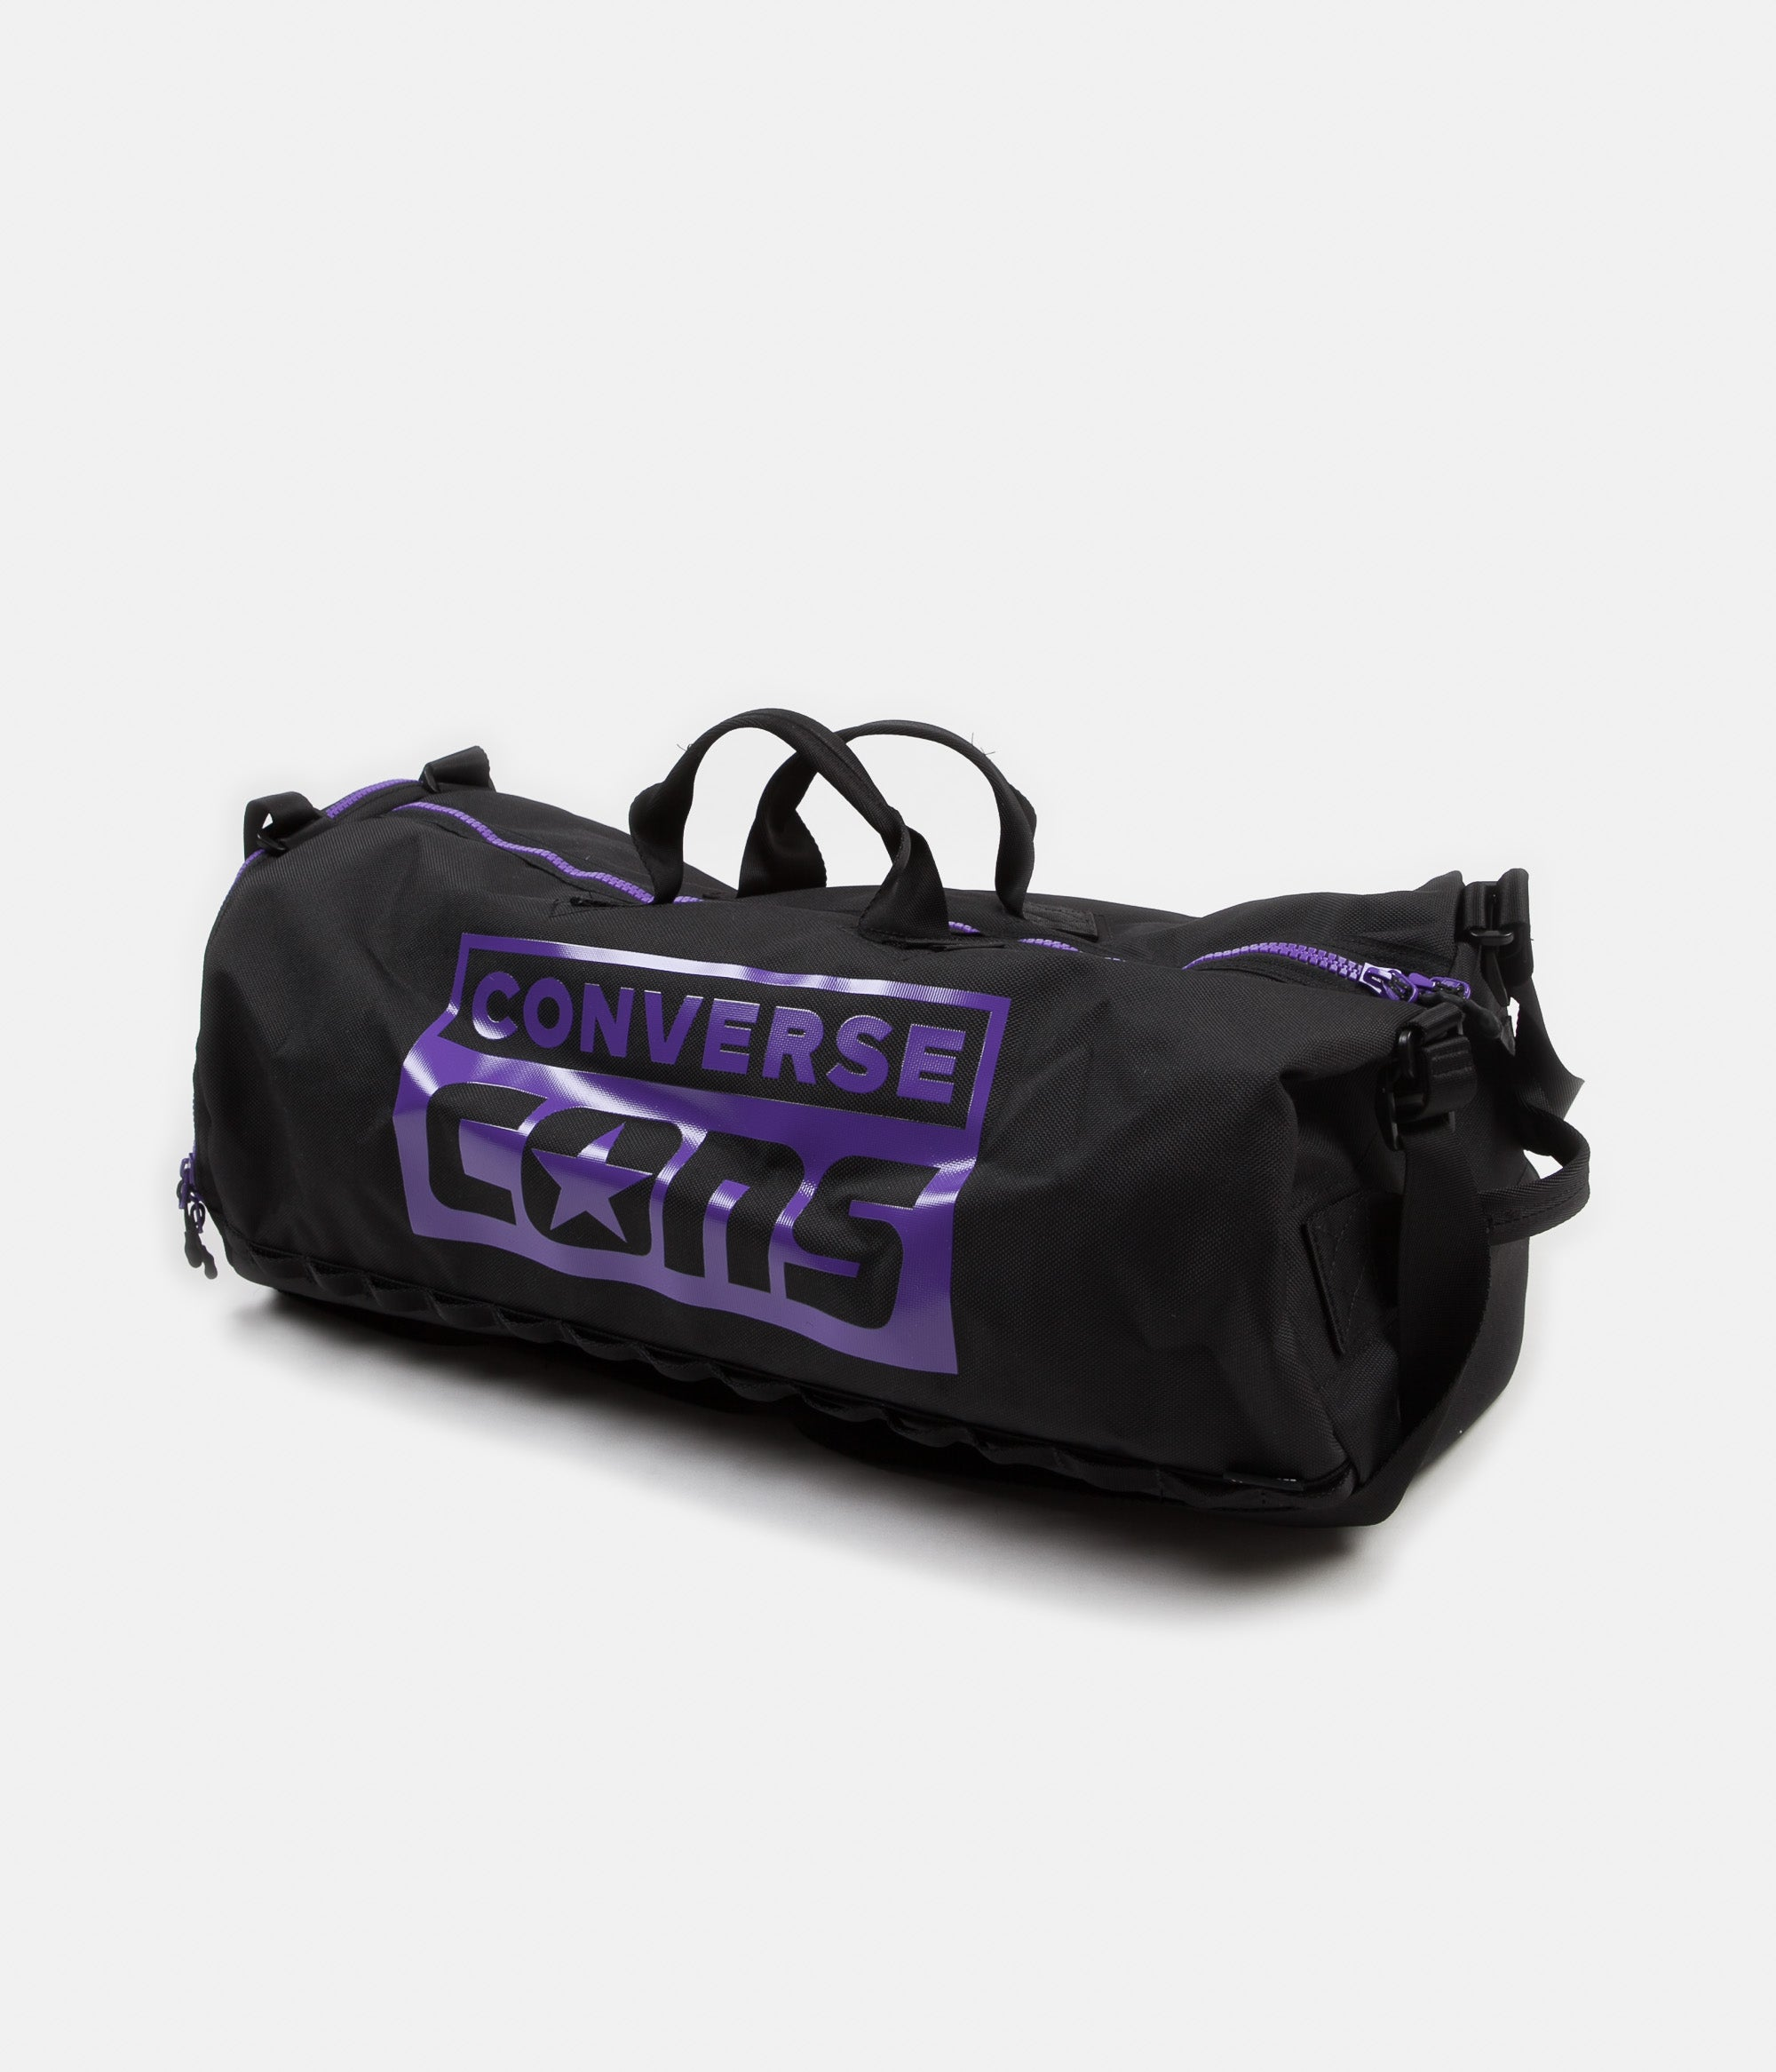 Converse  Purple Pack  3 Way Duffel Bag - Black   Purple  473be10851d02